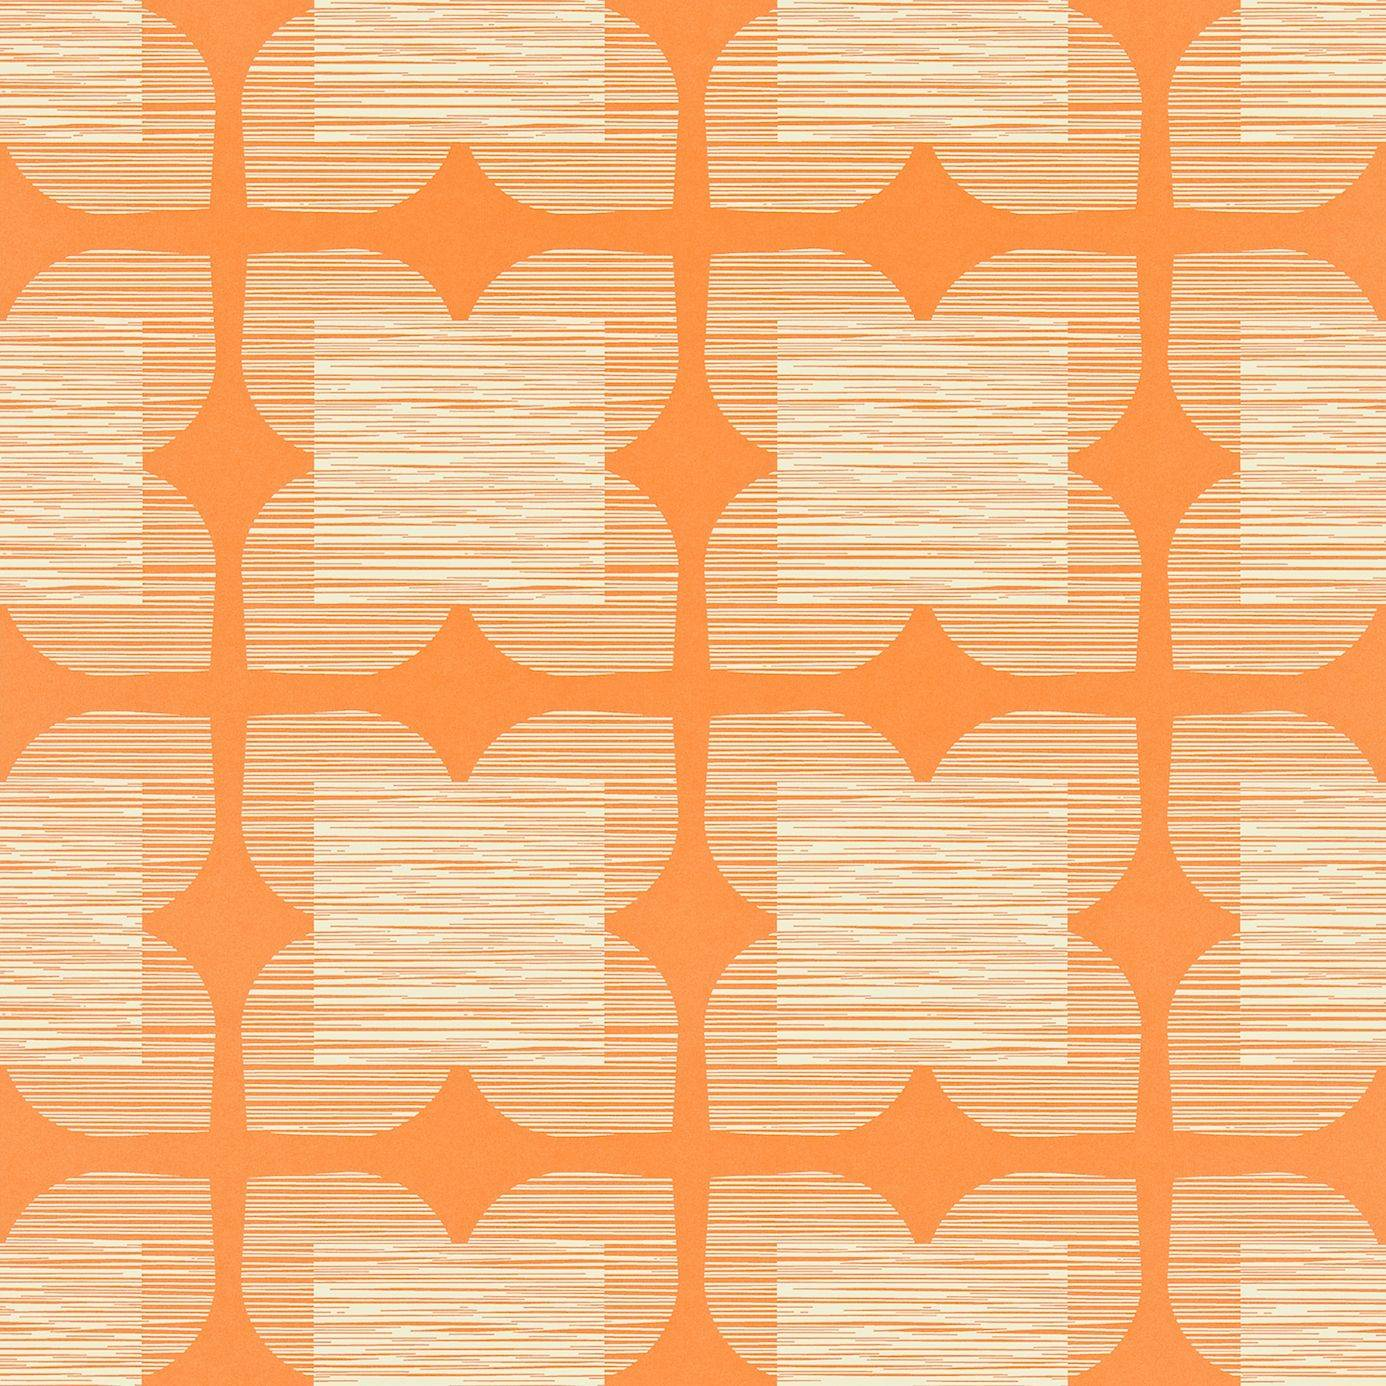 flower tile wallpaper clementine 110422 harlequin orla kiely wallpapers collection. Black Bedroom Furniture Sets. Home Design Ideas